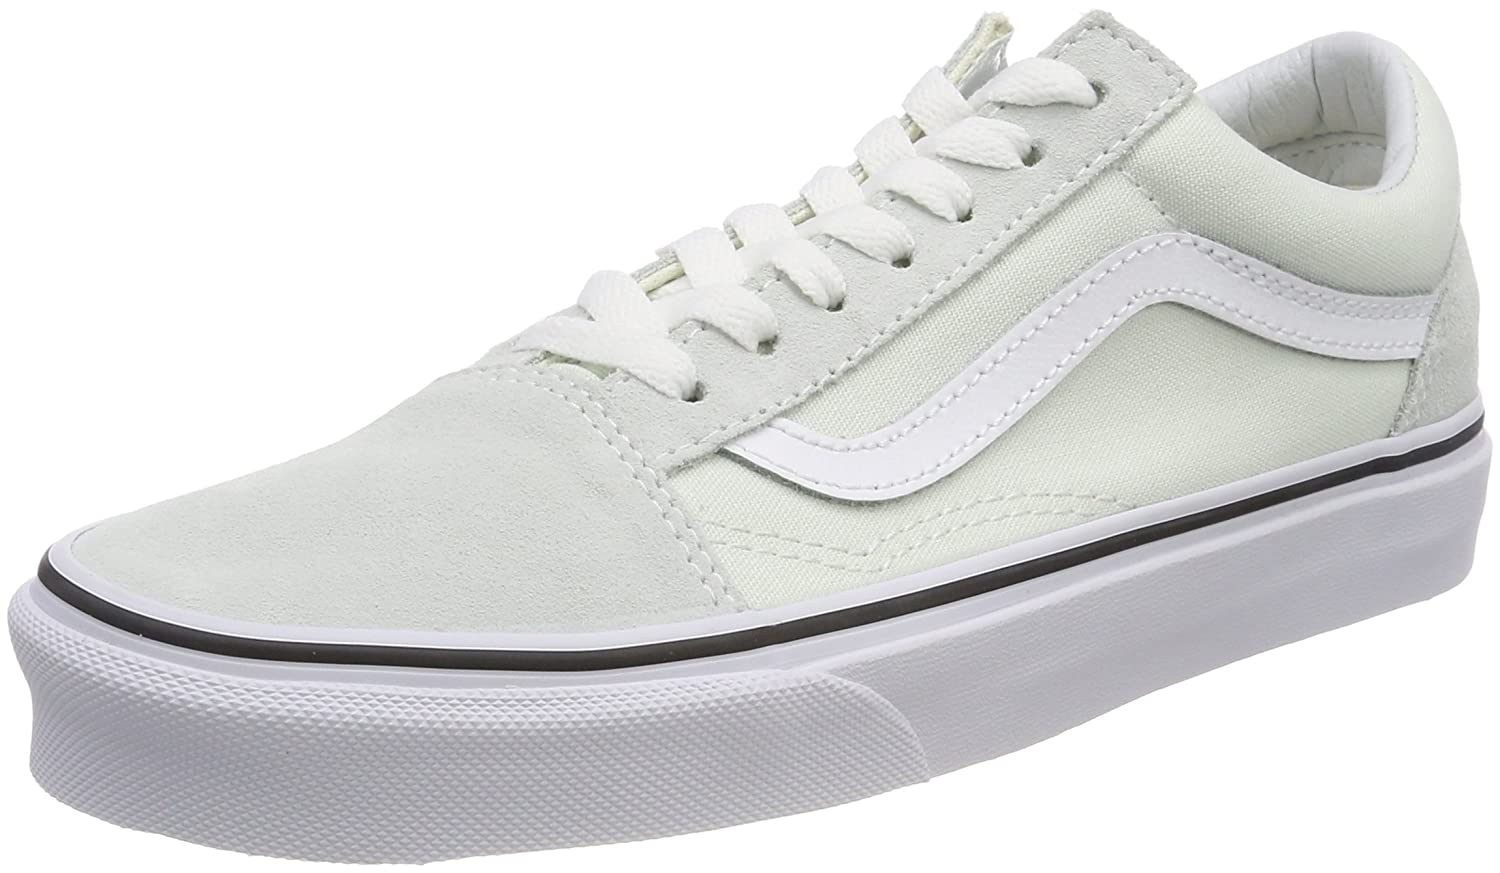 0e3ccc5d5a268 Vans Women s Old Skool Trainers  Amazon.co.uk  Shoes   Bags